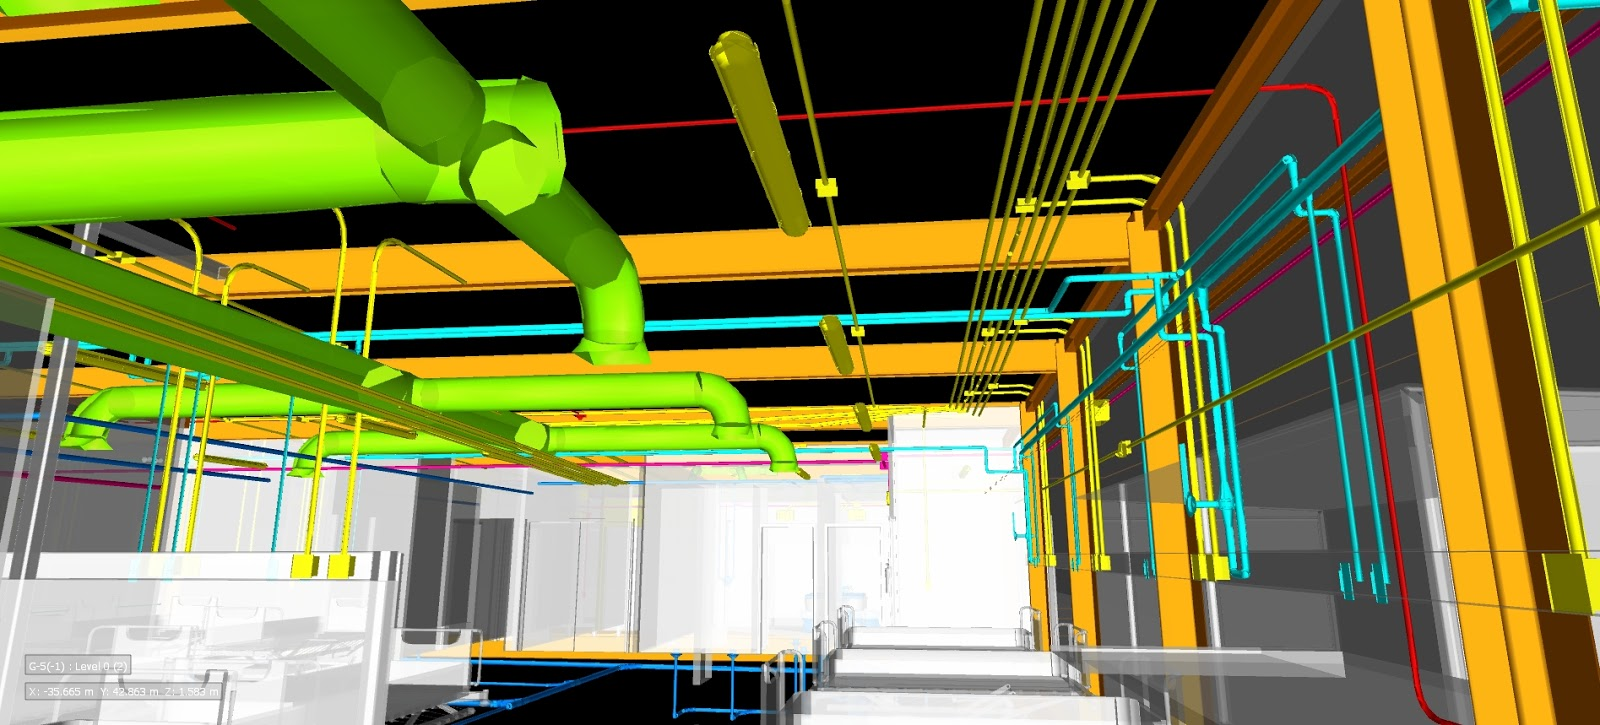 BIM Collaboration, system integration for clash detection